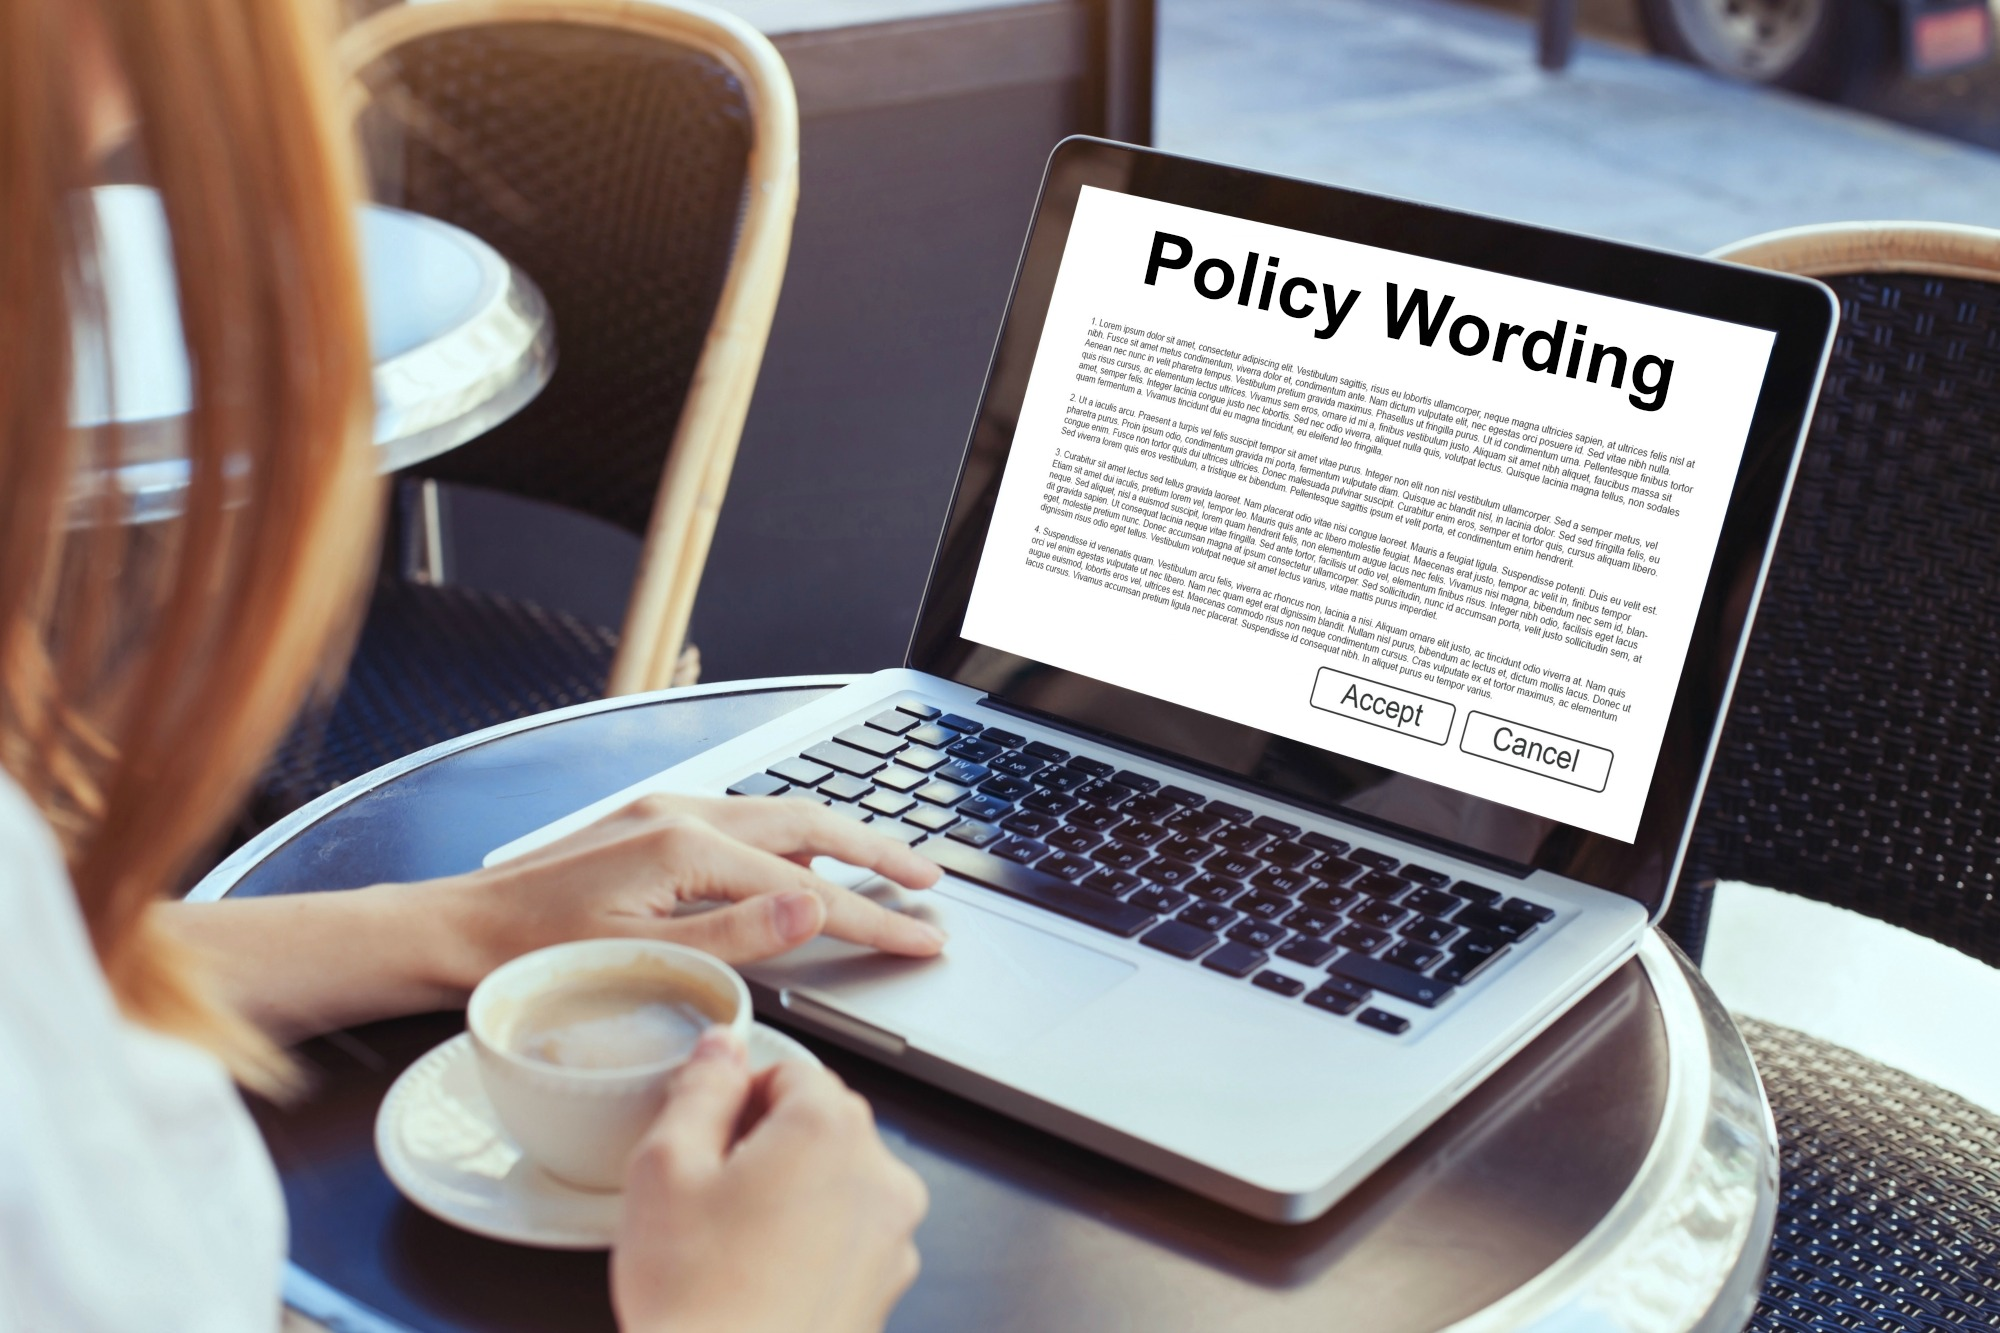 How to Read & Understand Your Policy Wording